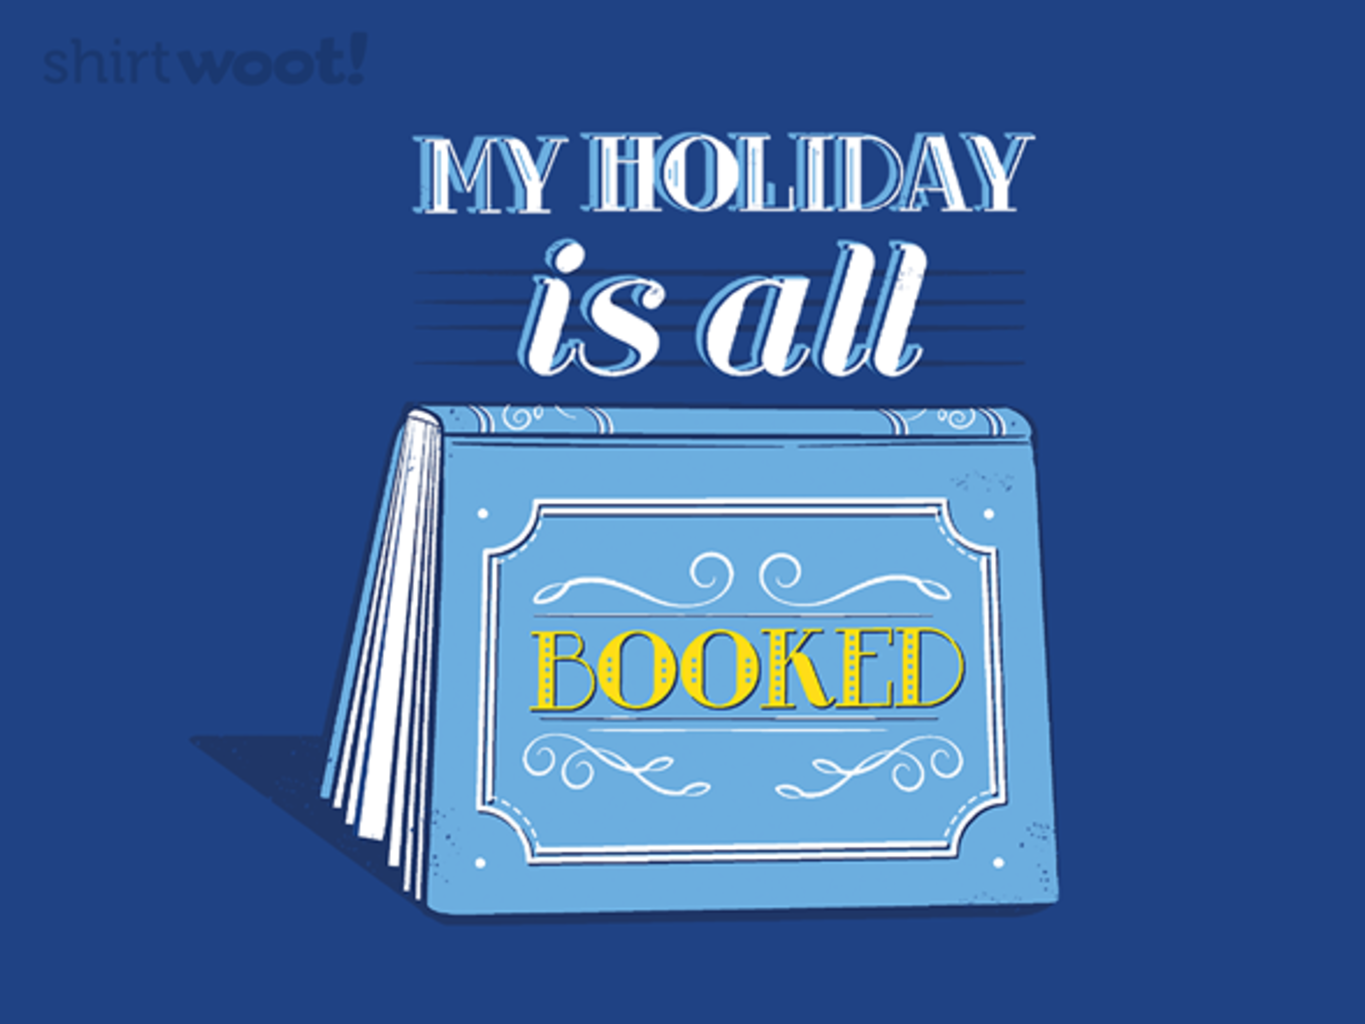 Woot!: Booked Holiday